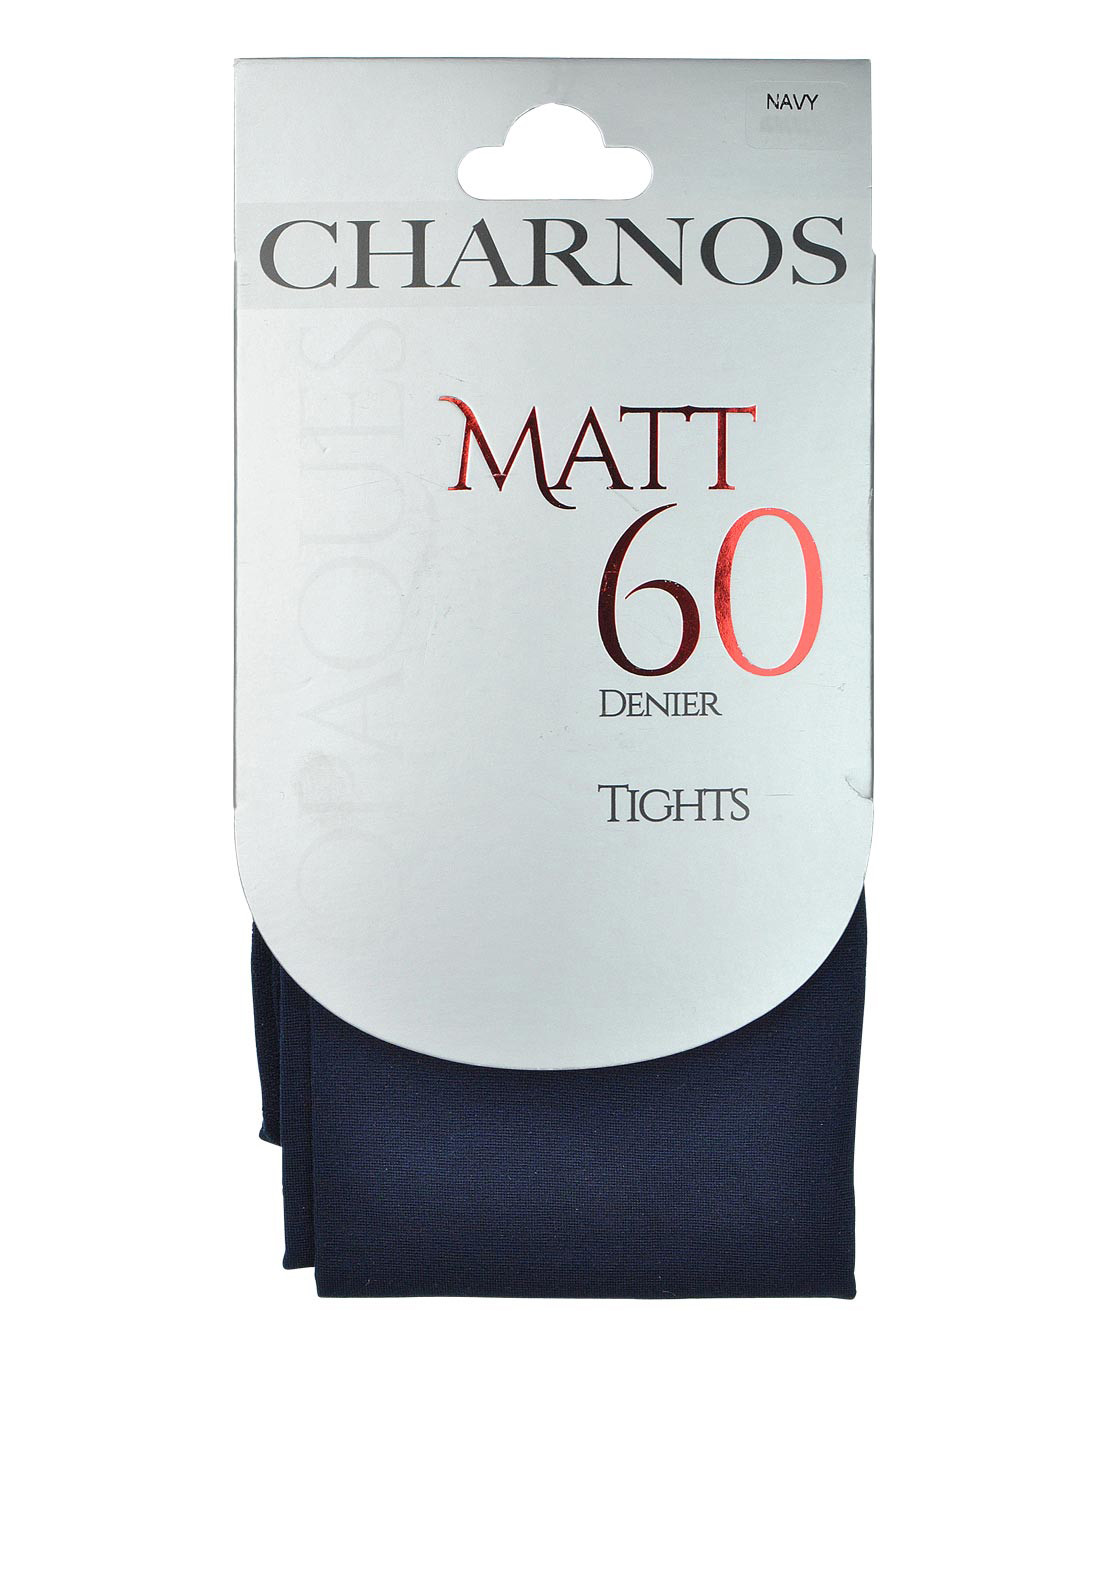 Charnos Opaques Matt 60 Denier Tights, Navy